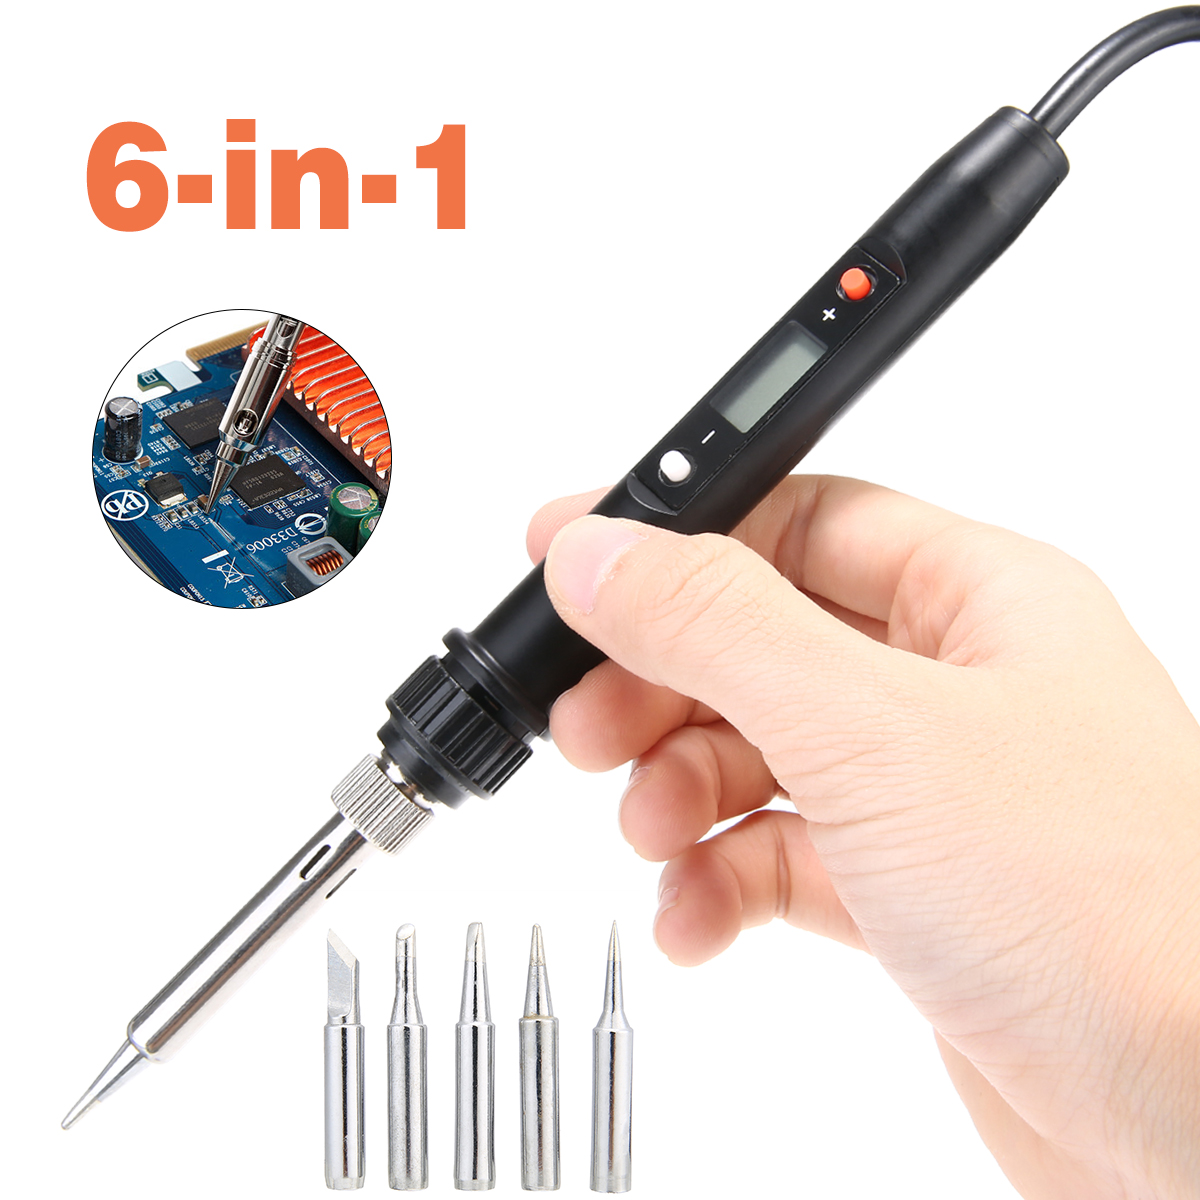 6in1 Electronics Soldering Iron Kit 80W Power Soldering Iron Adjustable Temperature With 5 Iron Tip Nozzles CPU Digital Control